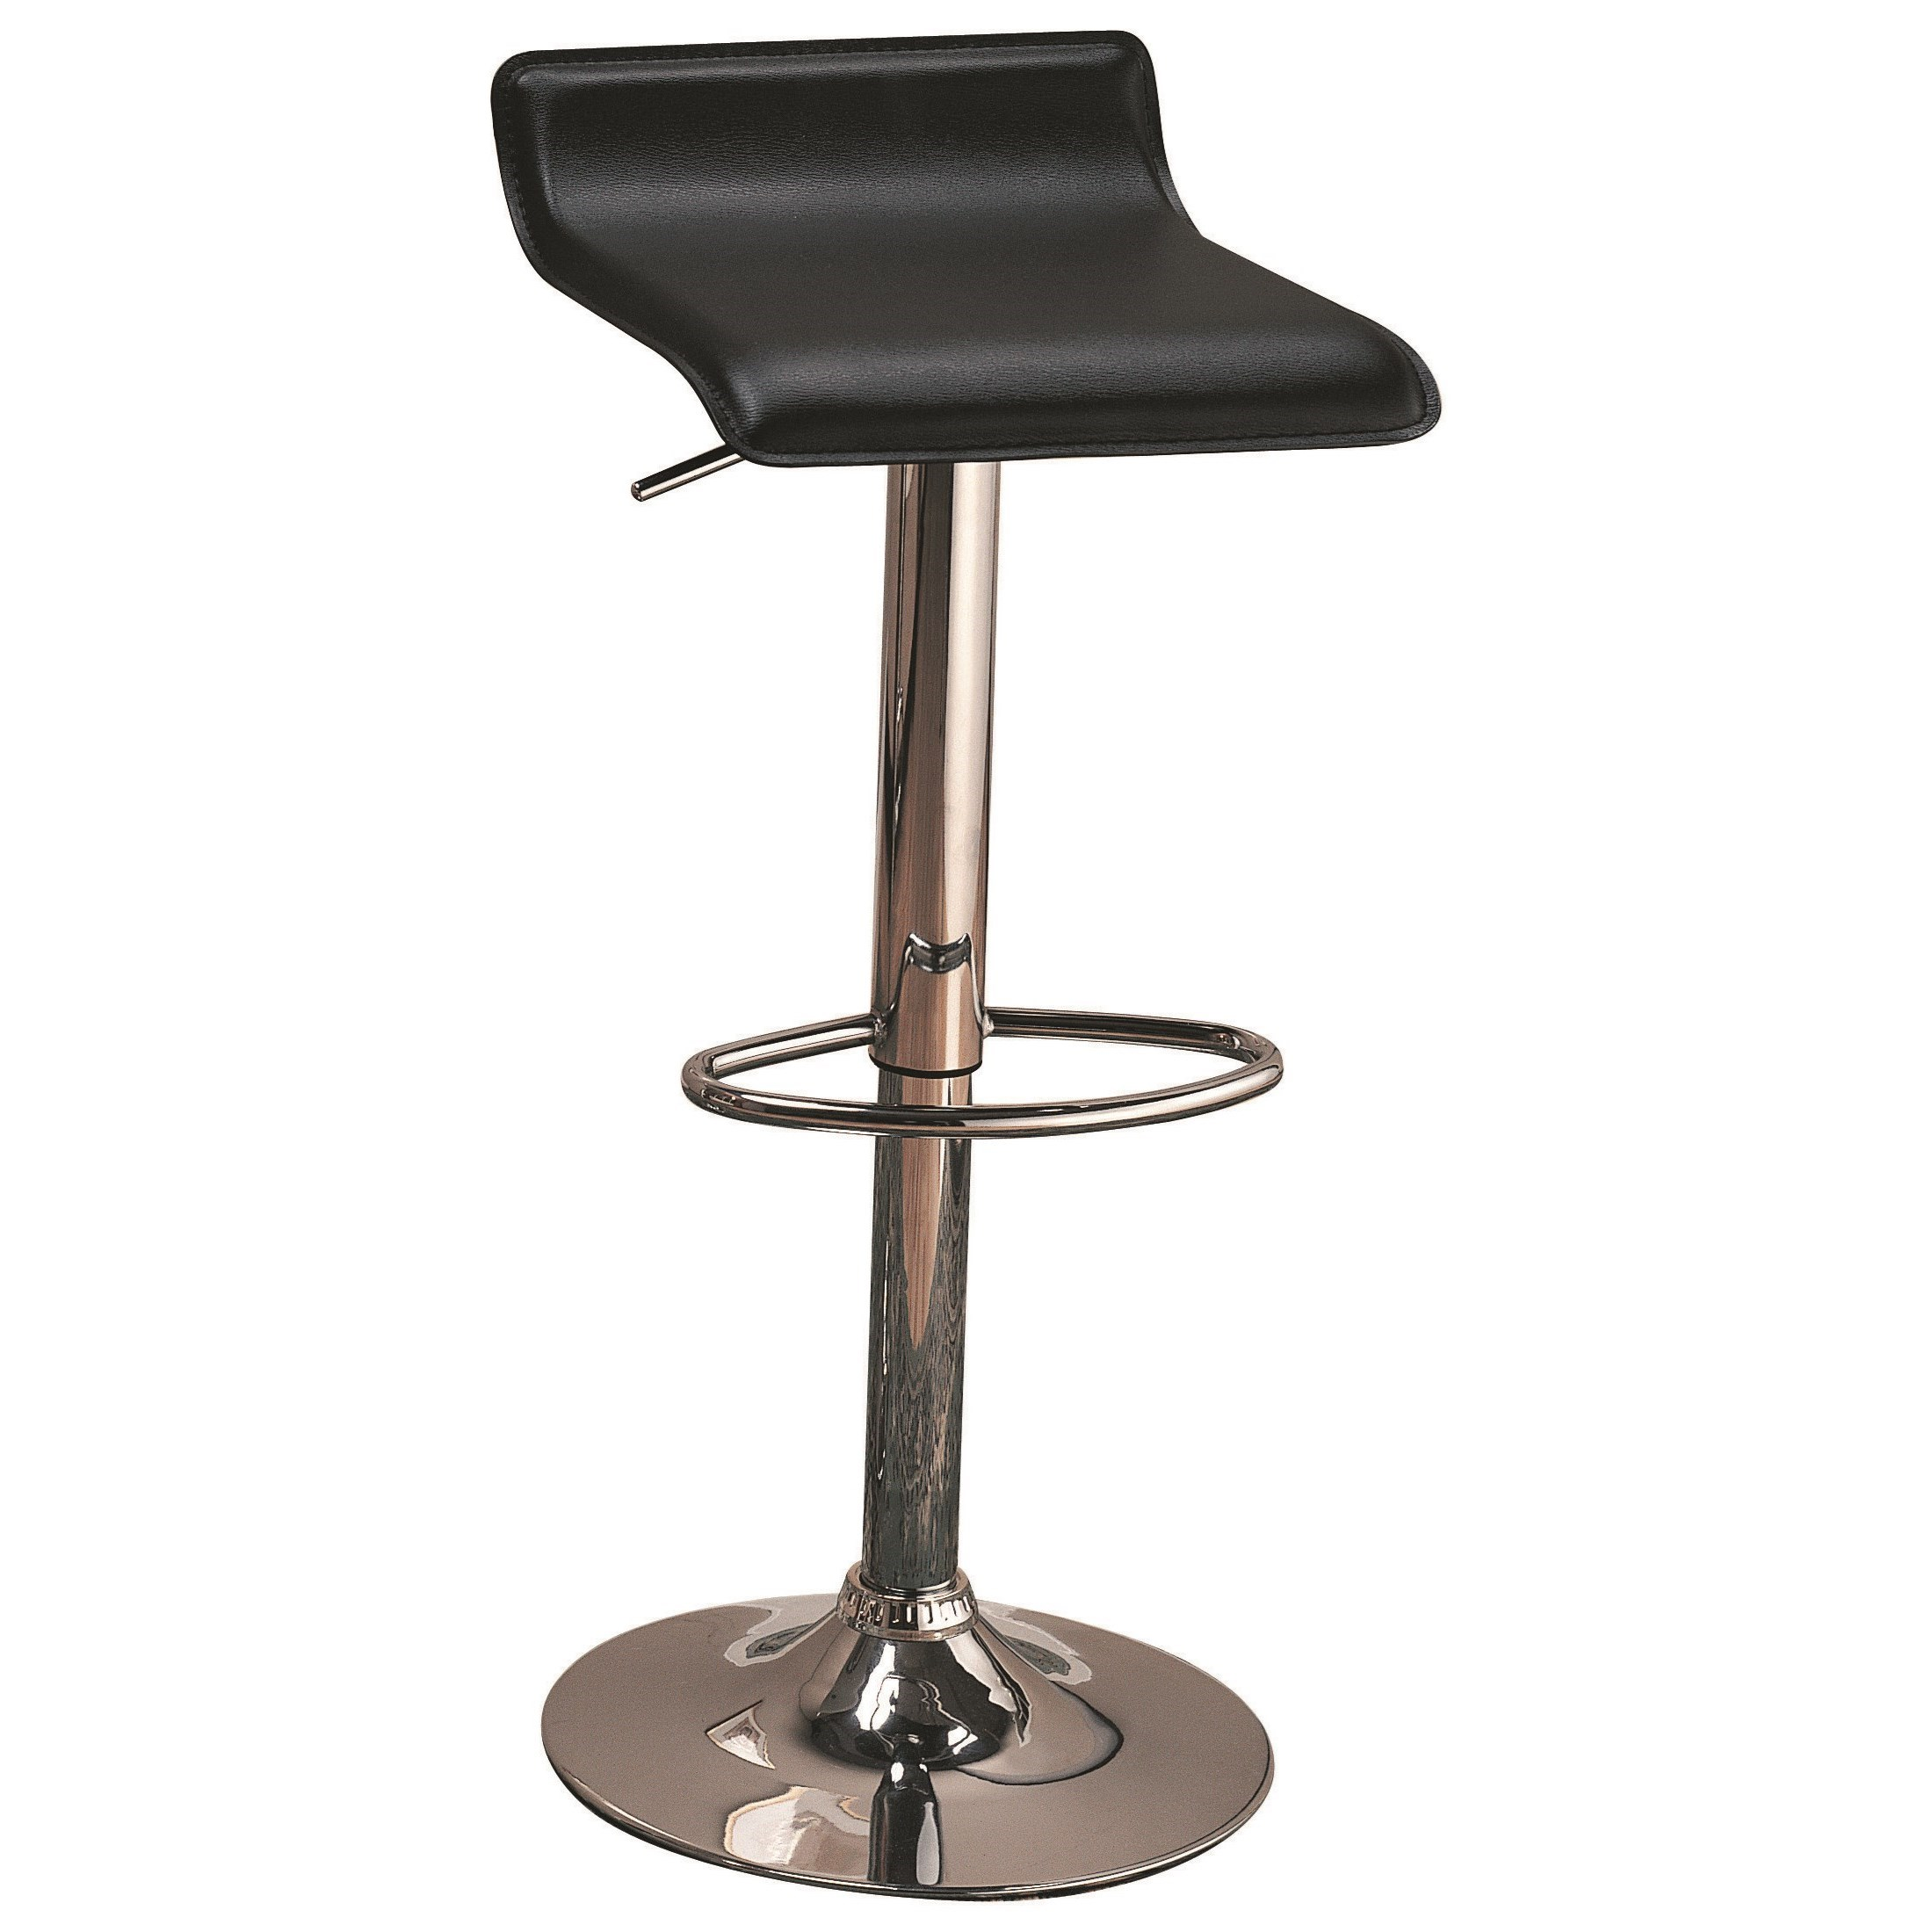 Superb Dining Chairs And Bar Stools 29 Upholstered Bar Chair Gamerscity Chair Design For Home Gamerscityorg